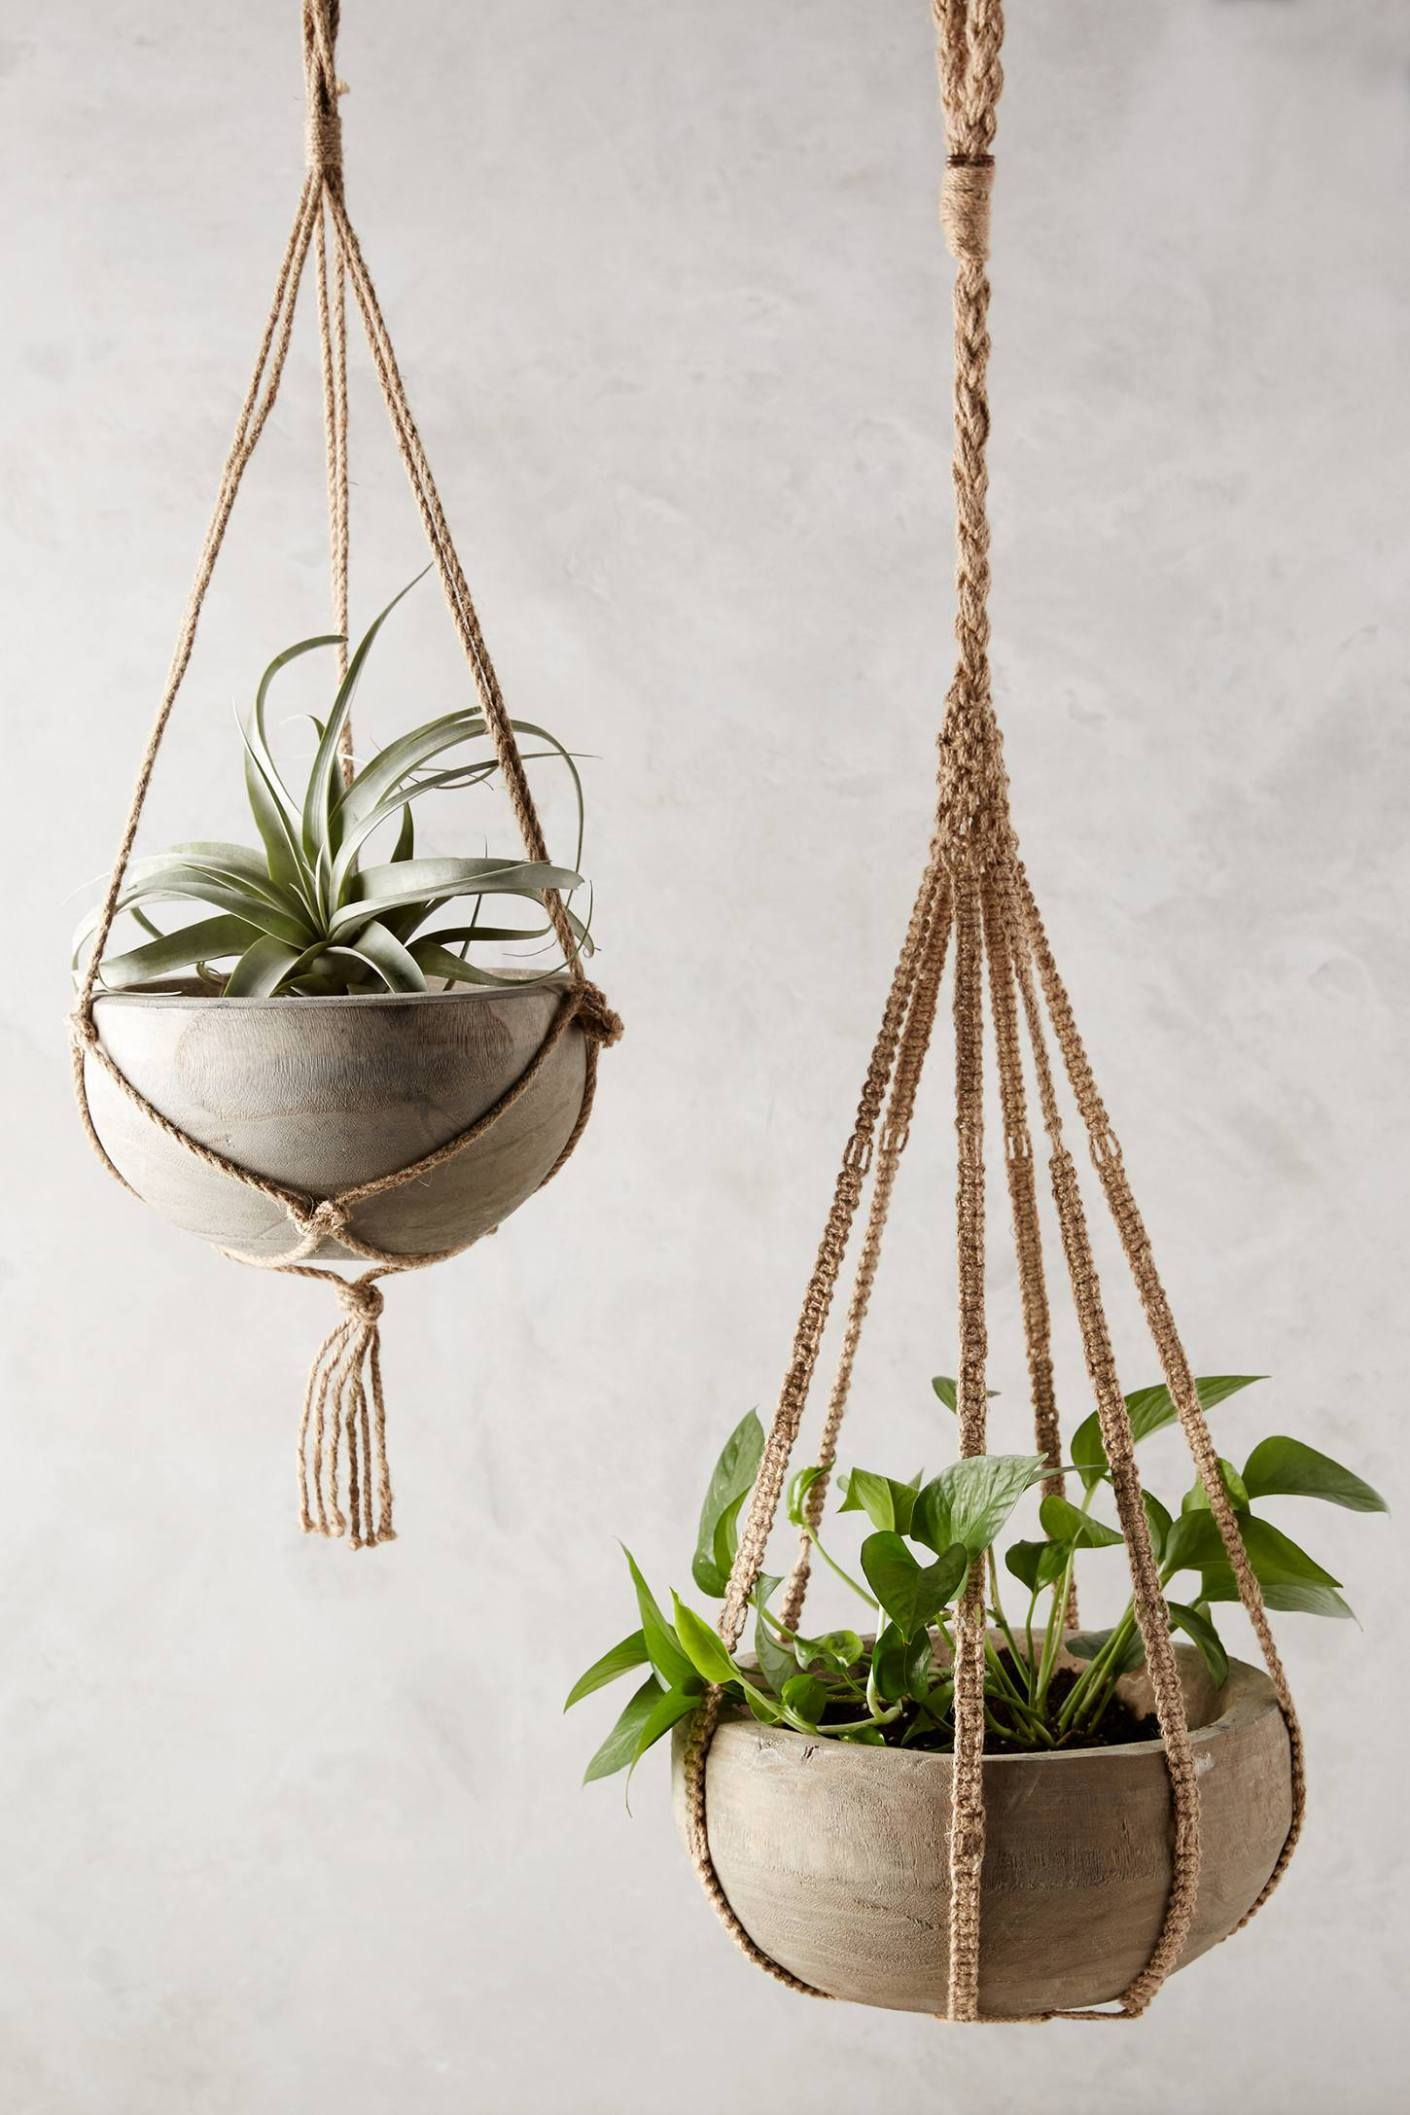 Hanging Indoor Herb Garden Anthropologies New Arrivals Home And Decor Things For